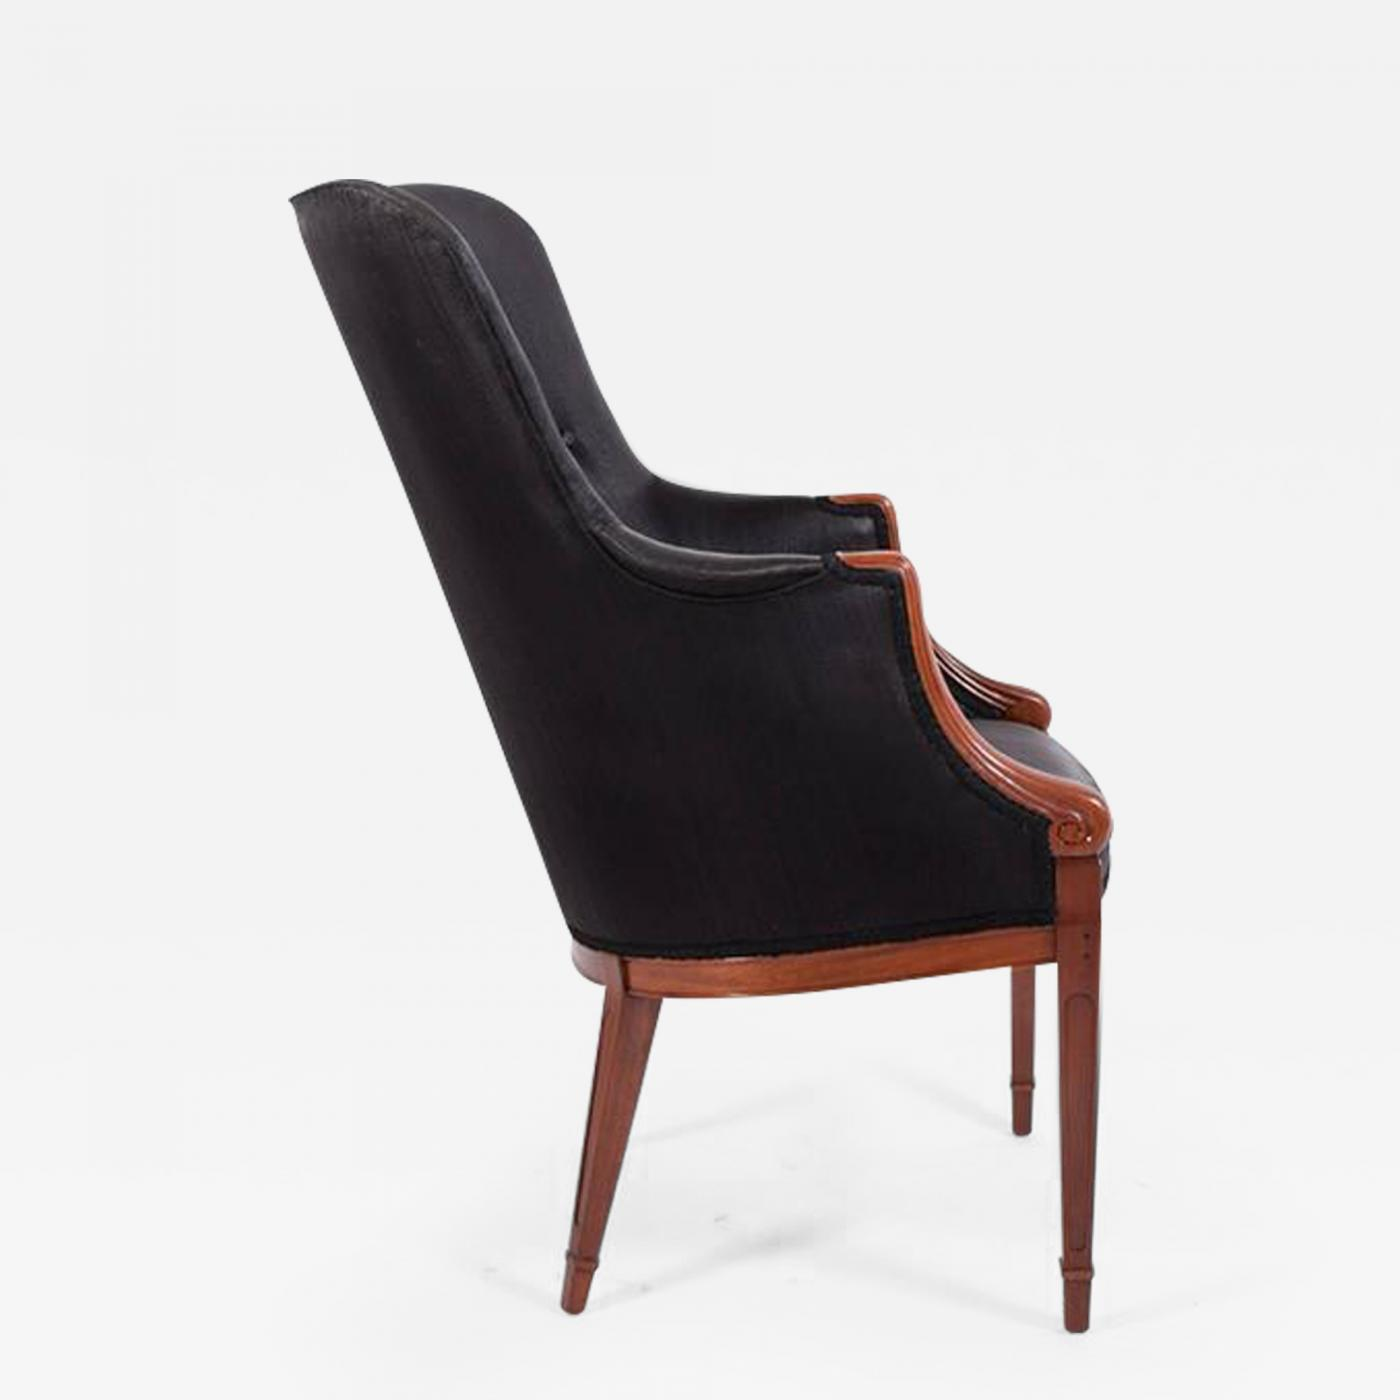 Frits Henningsen Frits Henningsen High Back Easy Chair 1940s